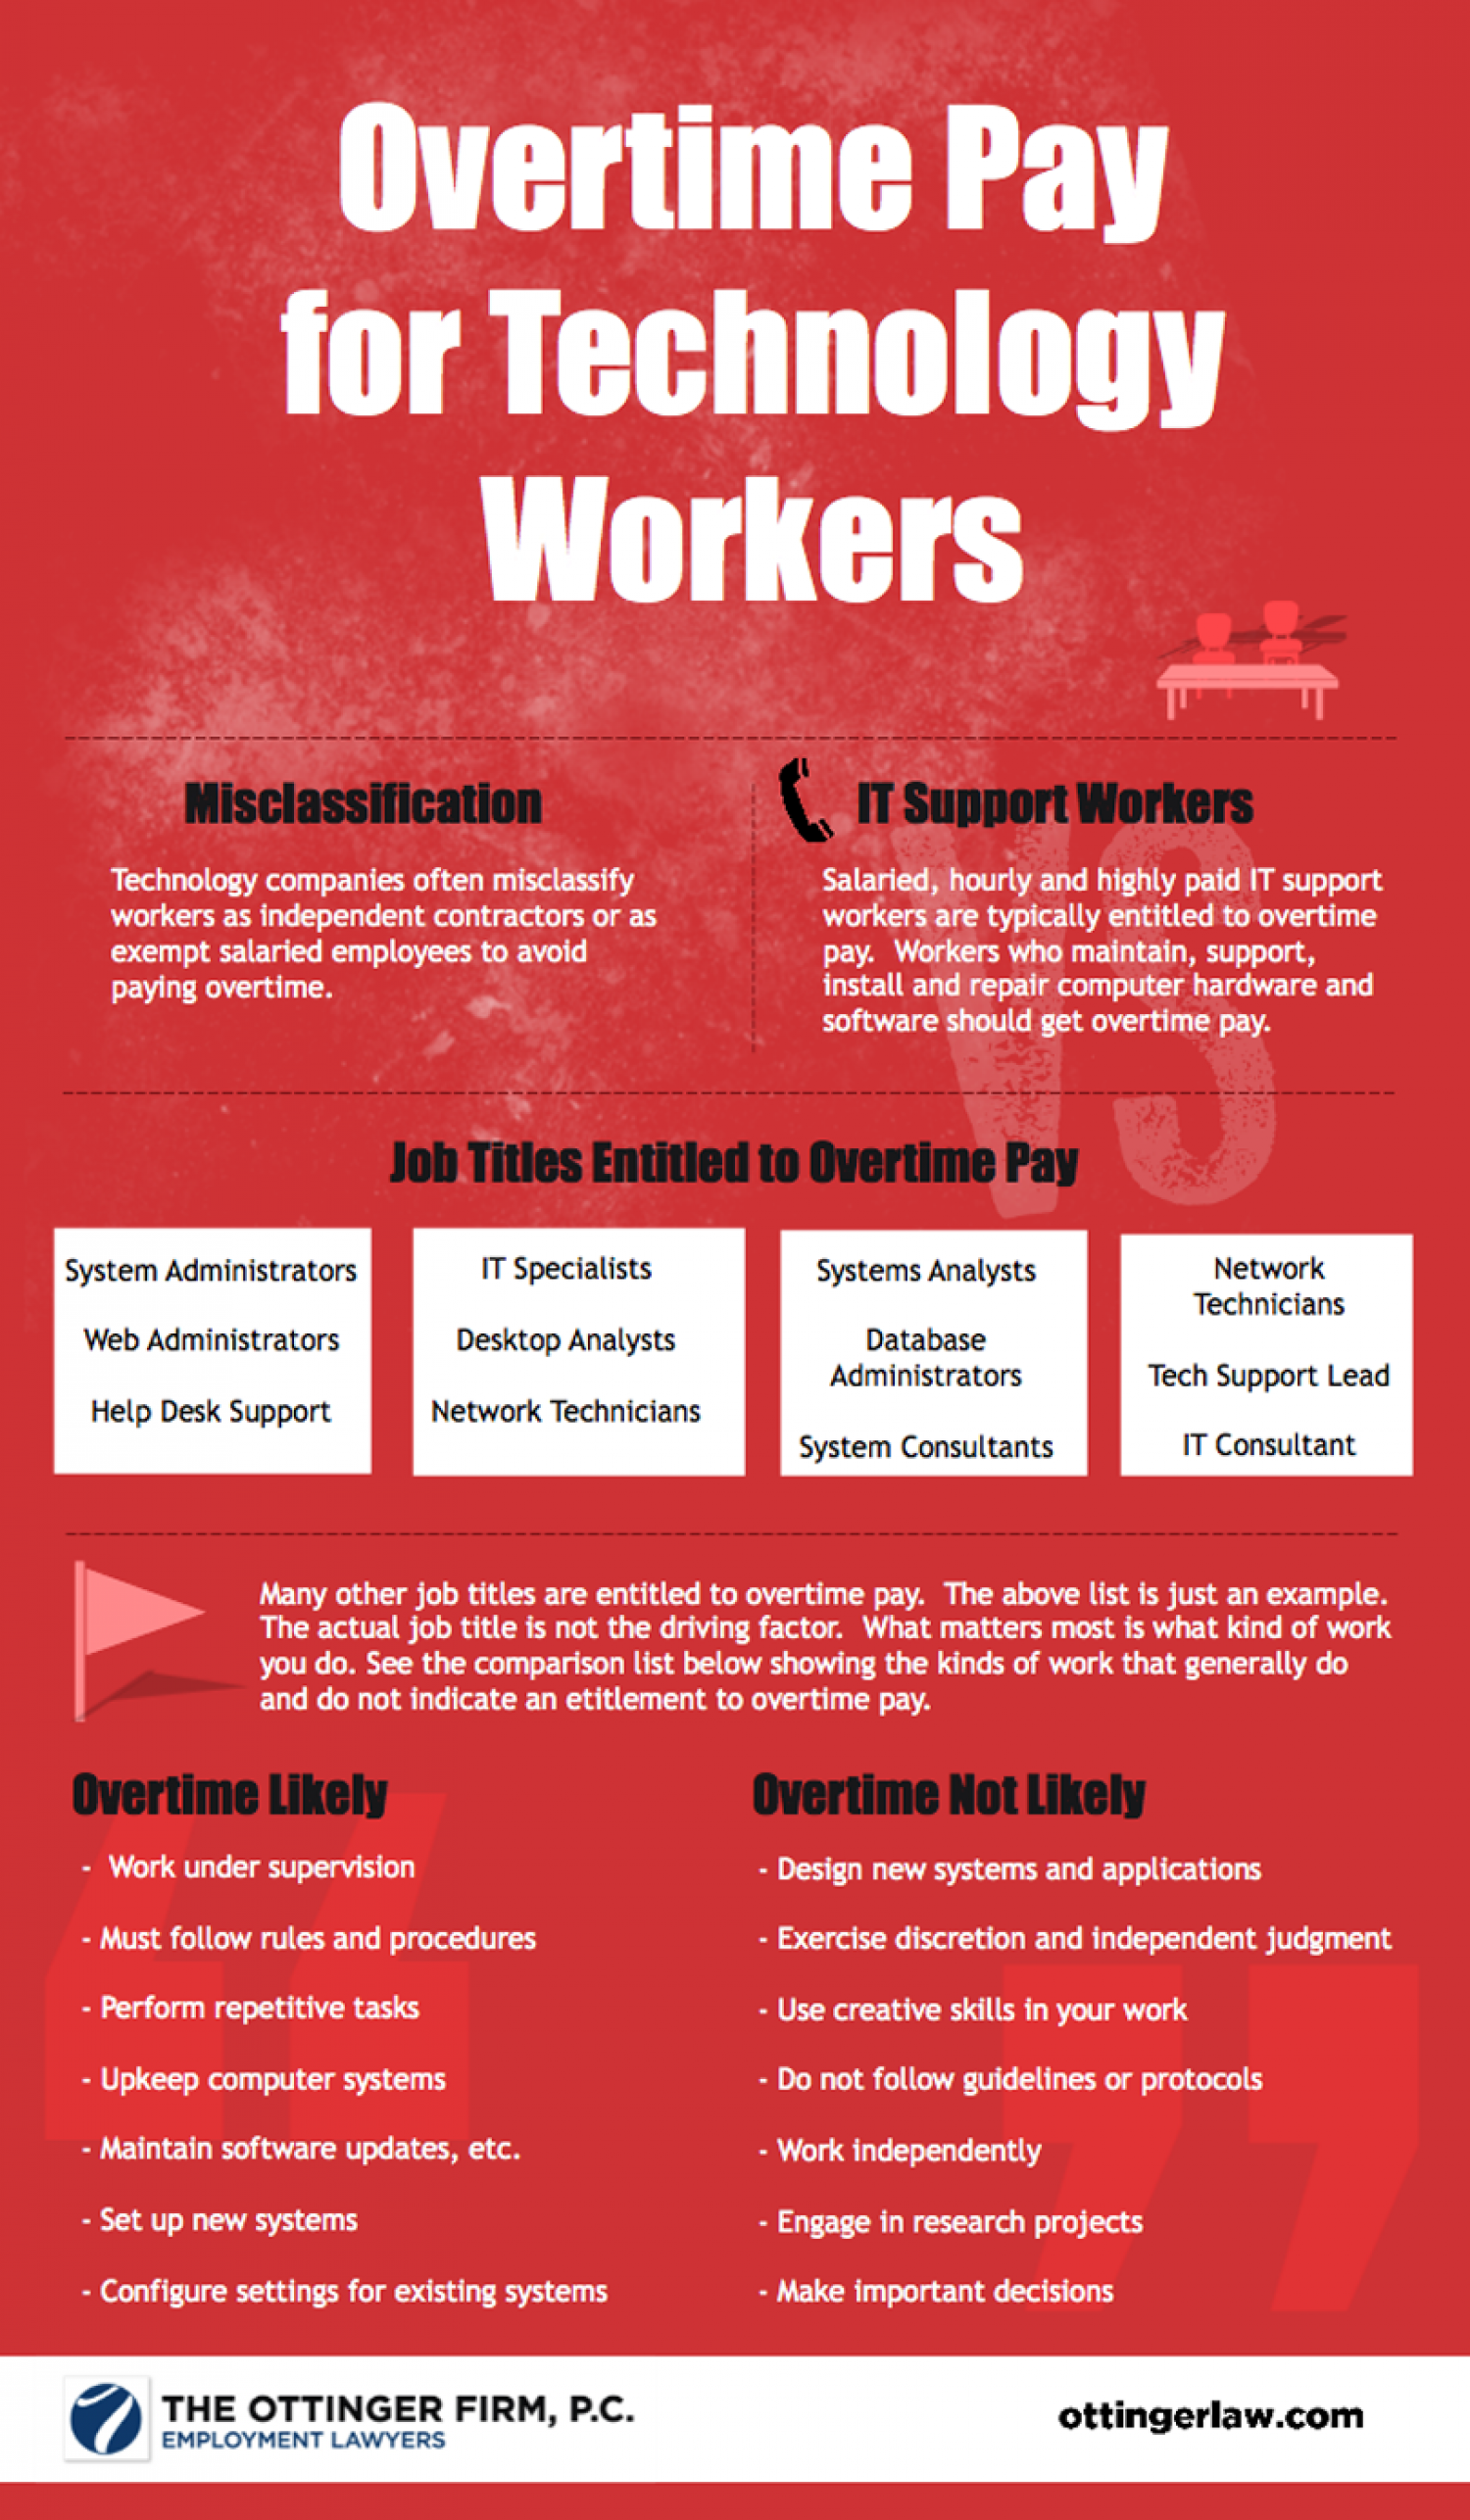 Overtime Pay For Technology Workers Infographic